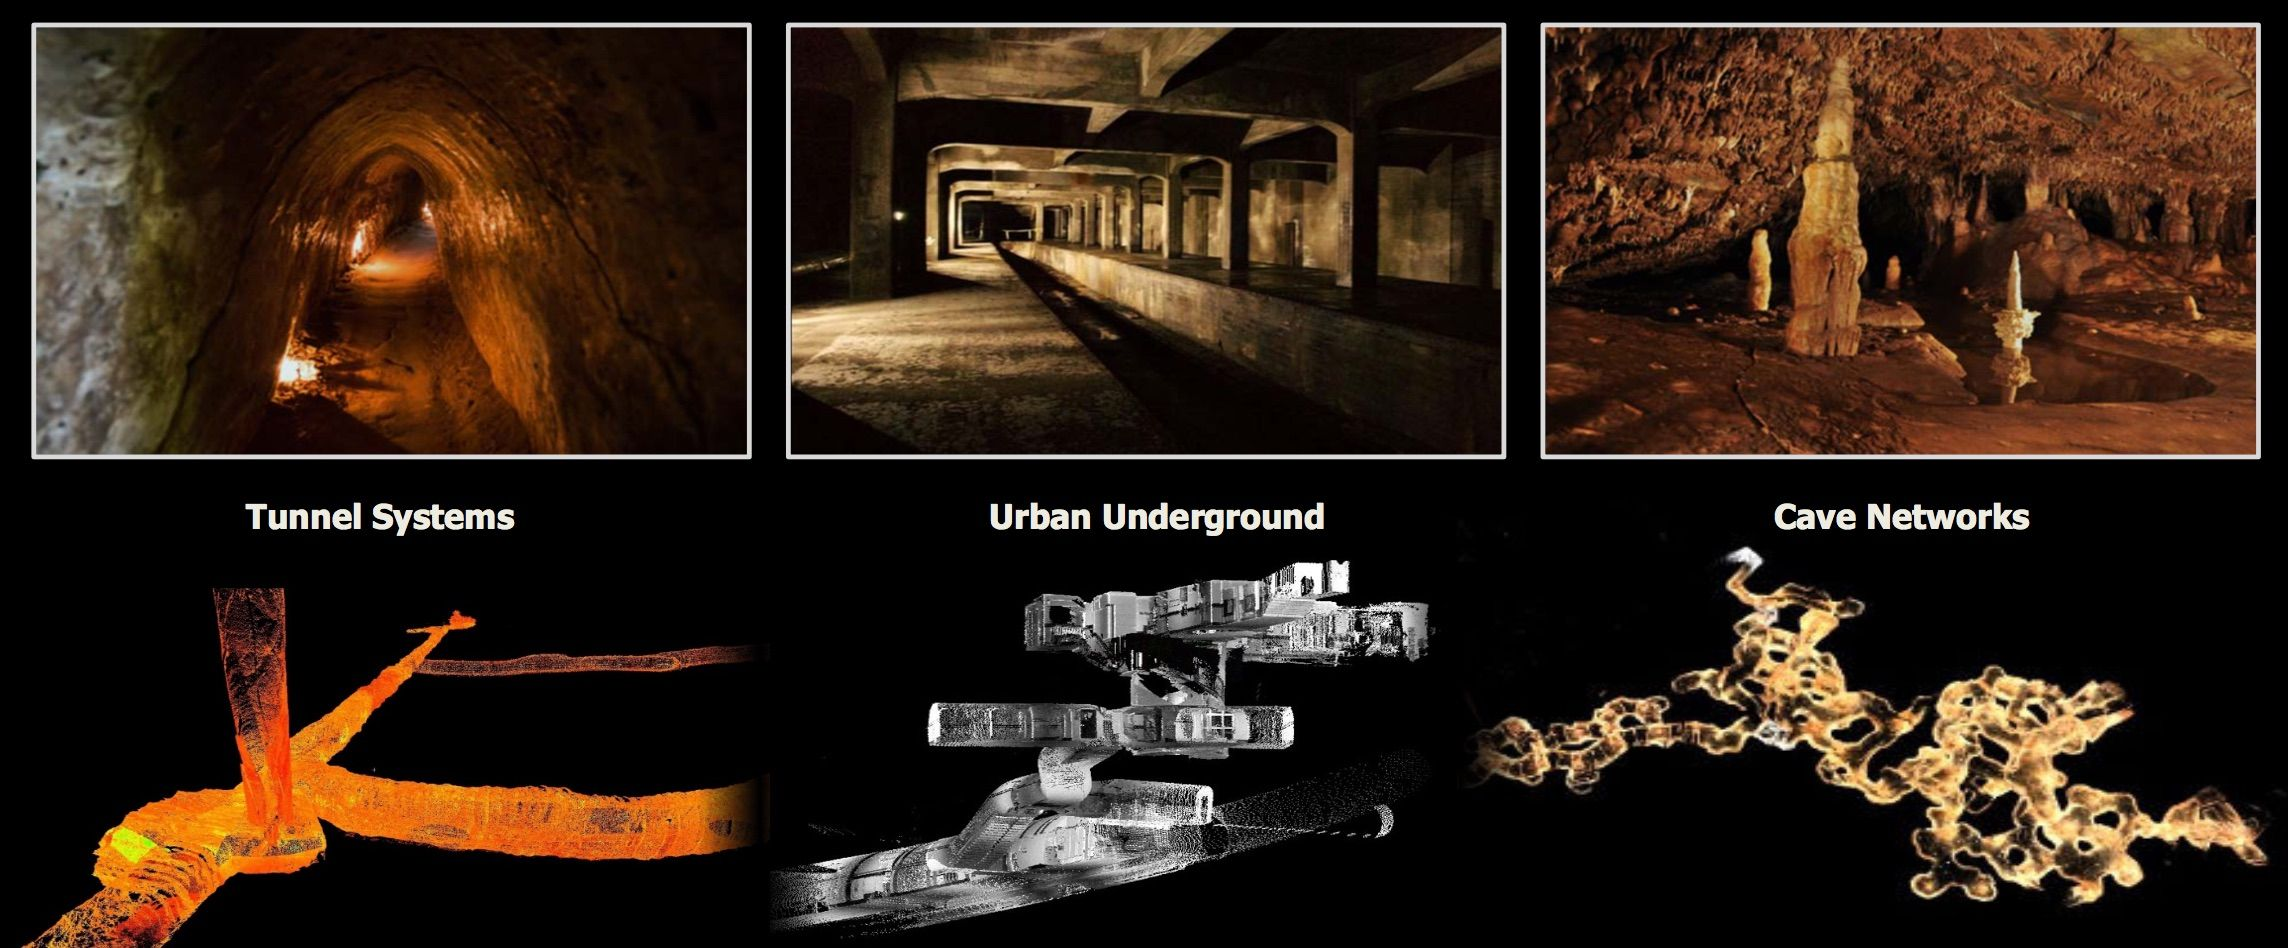 DARPA Subterranean Challenge: Teams of Robots Compete to Explore